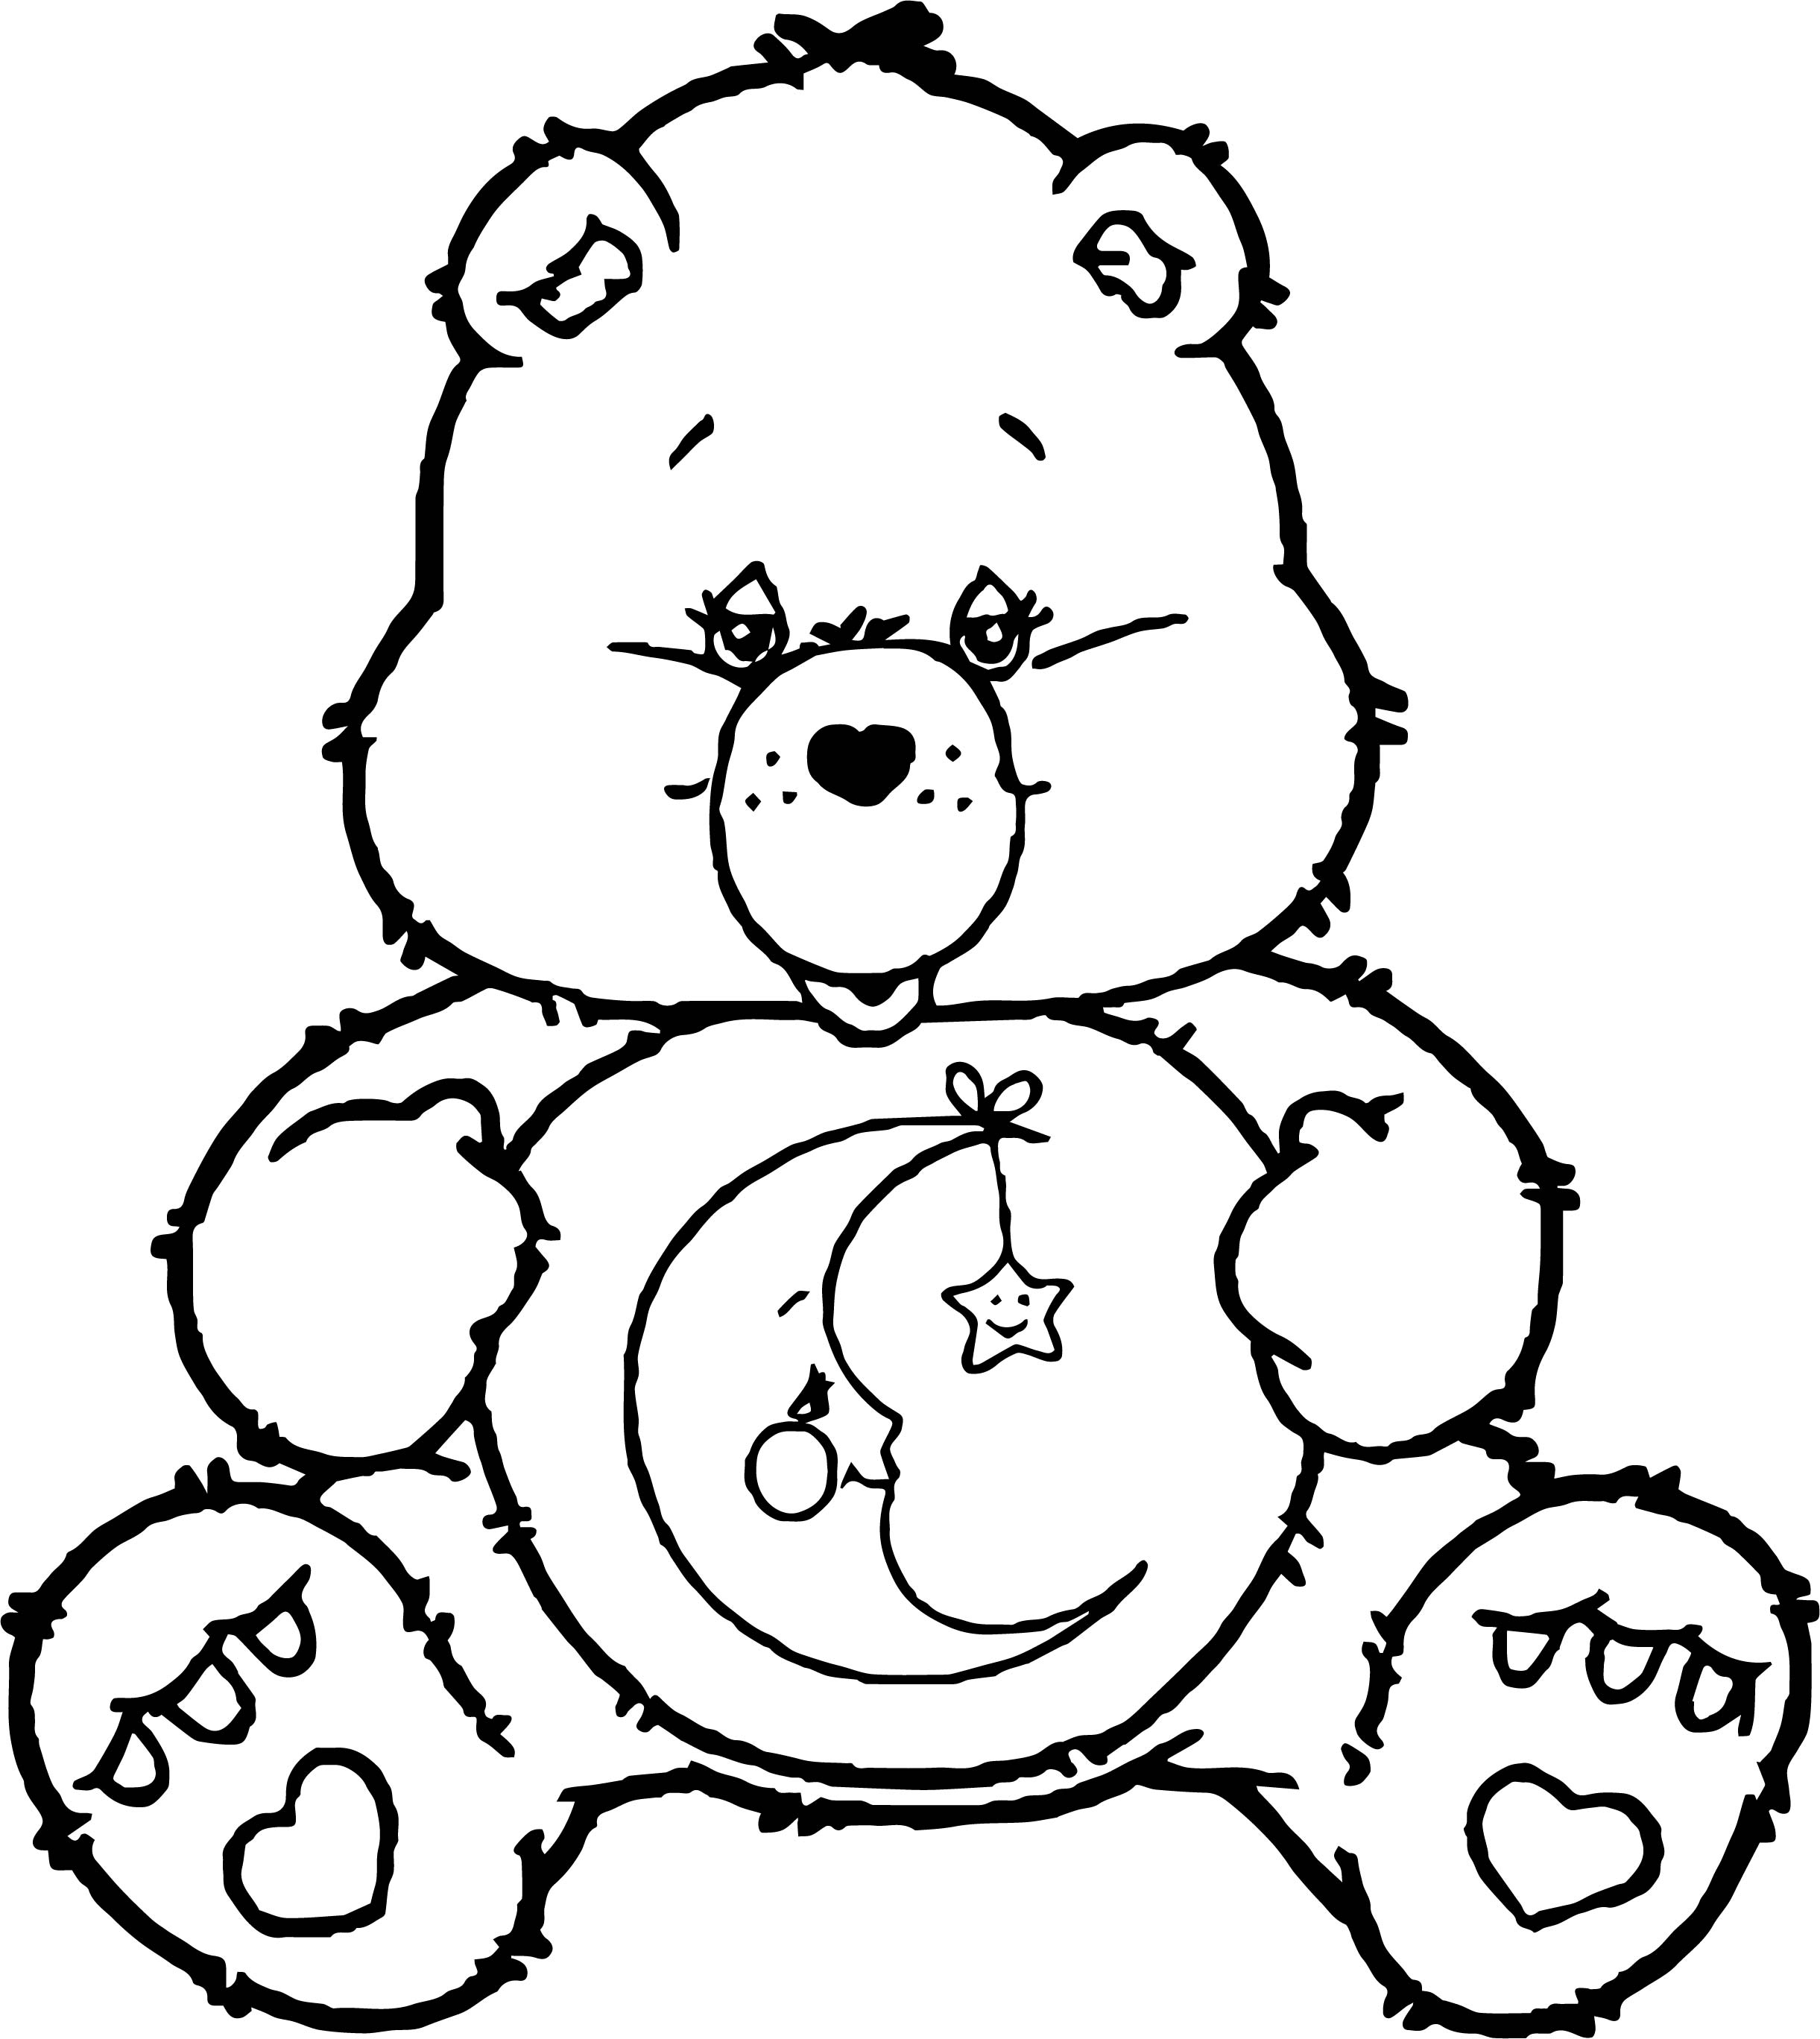 Care bears sleep time coloring page for Care bears coloring pages printable